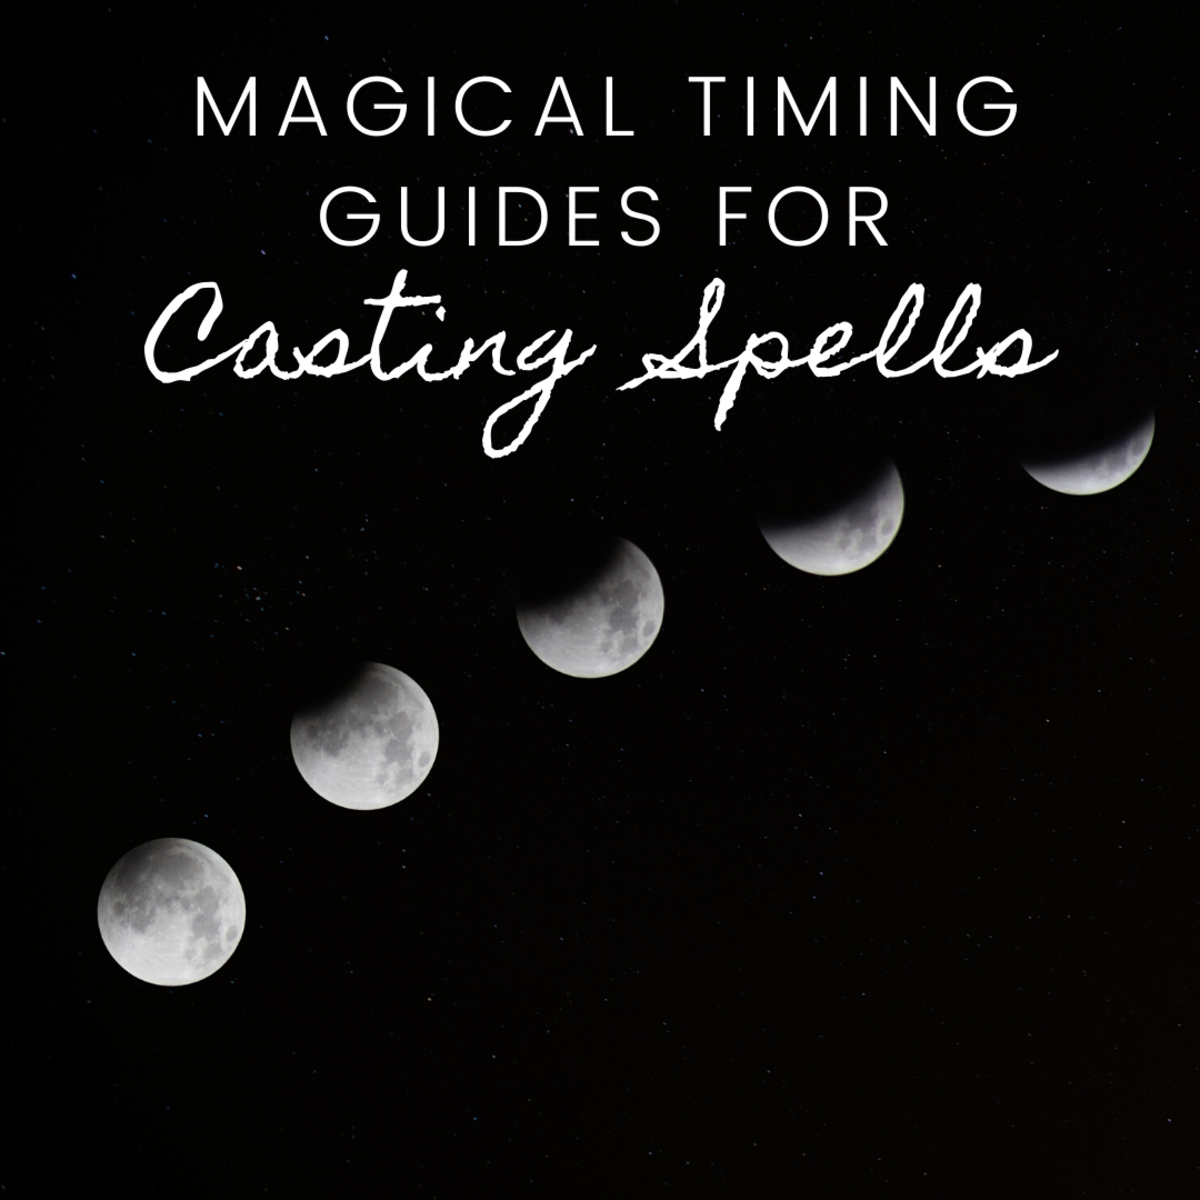 Magical Timing Guides for Casting Spells